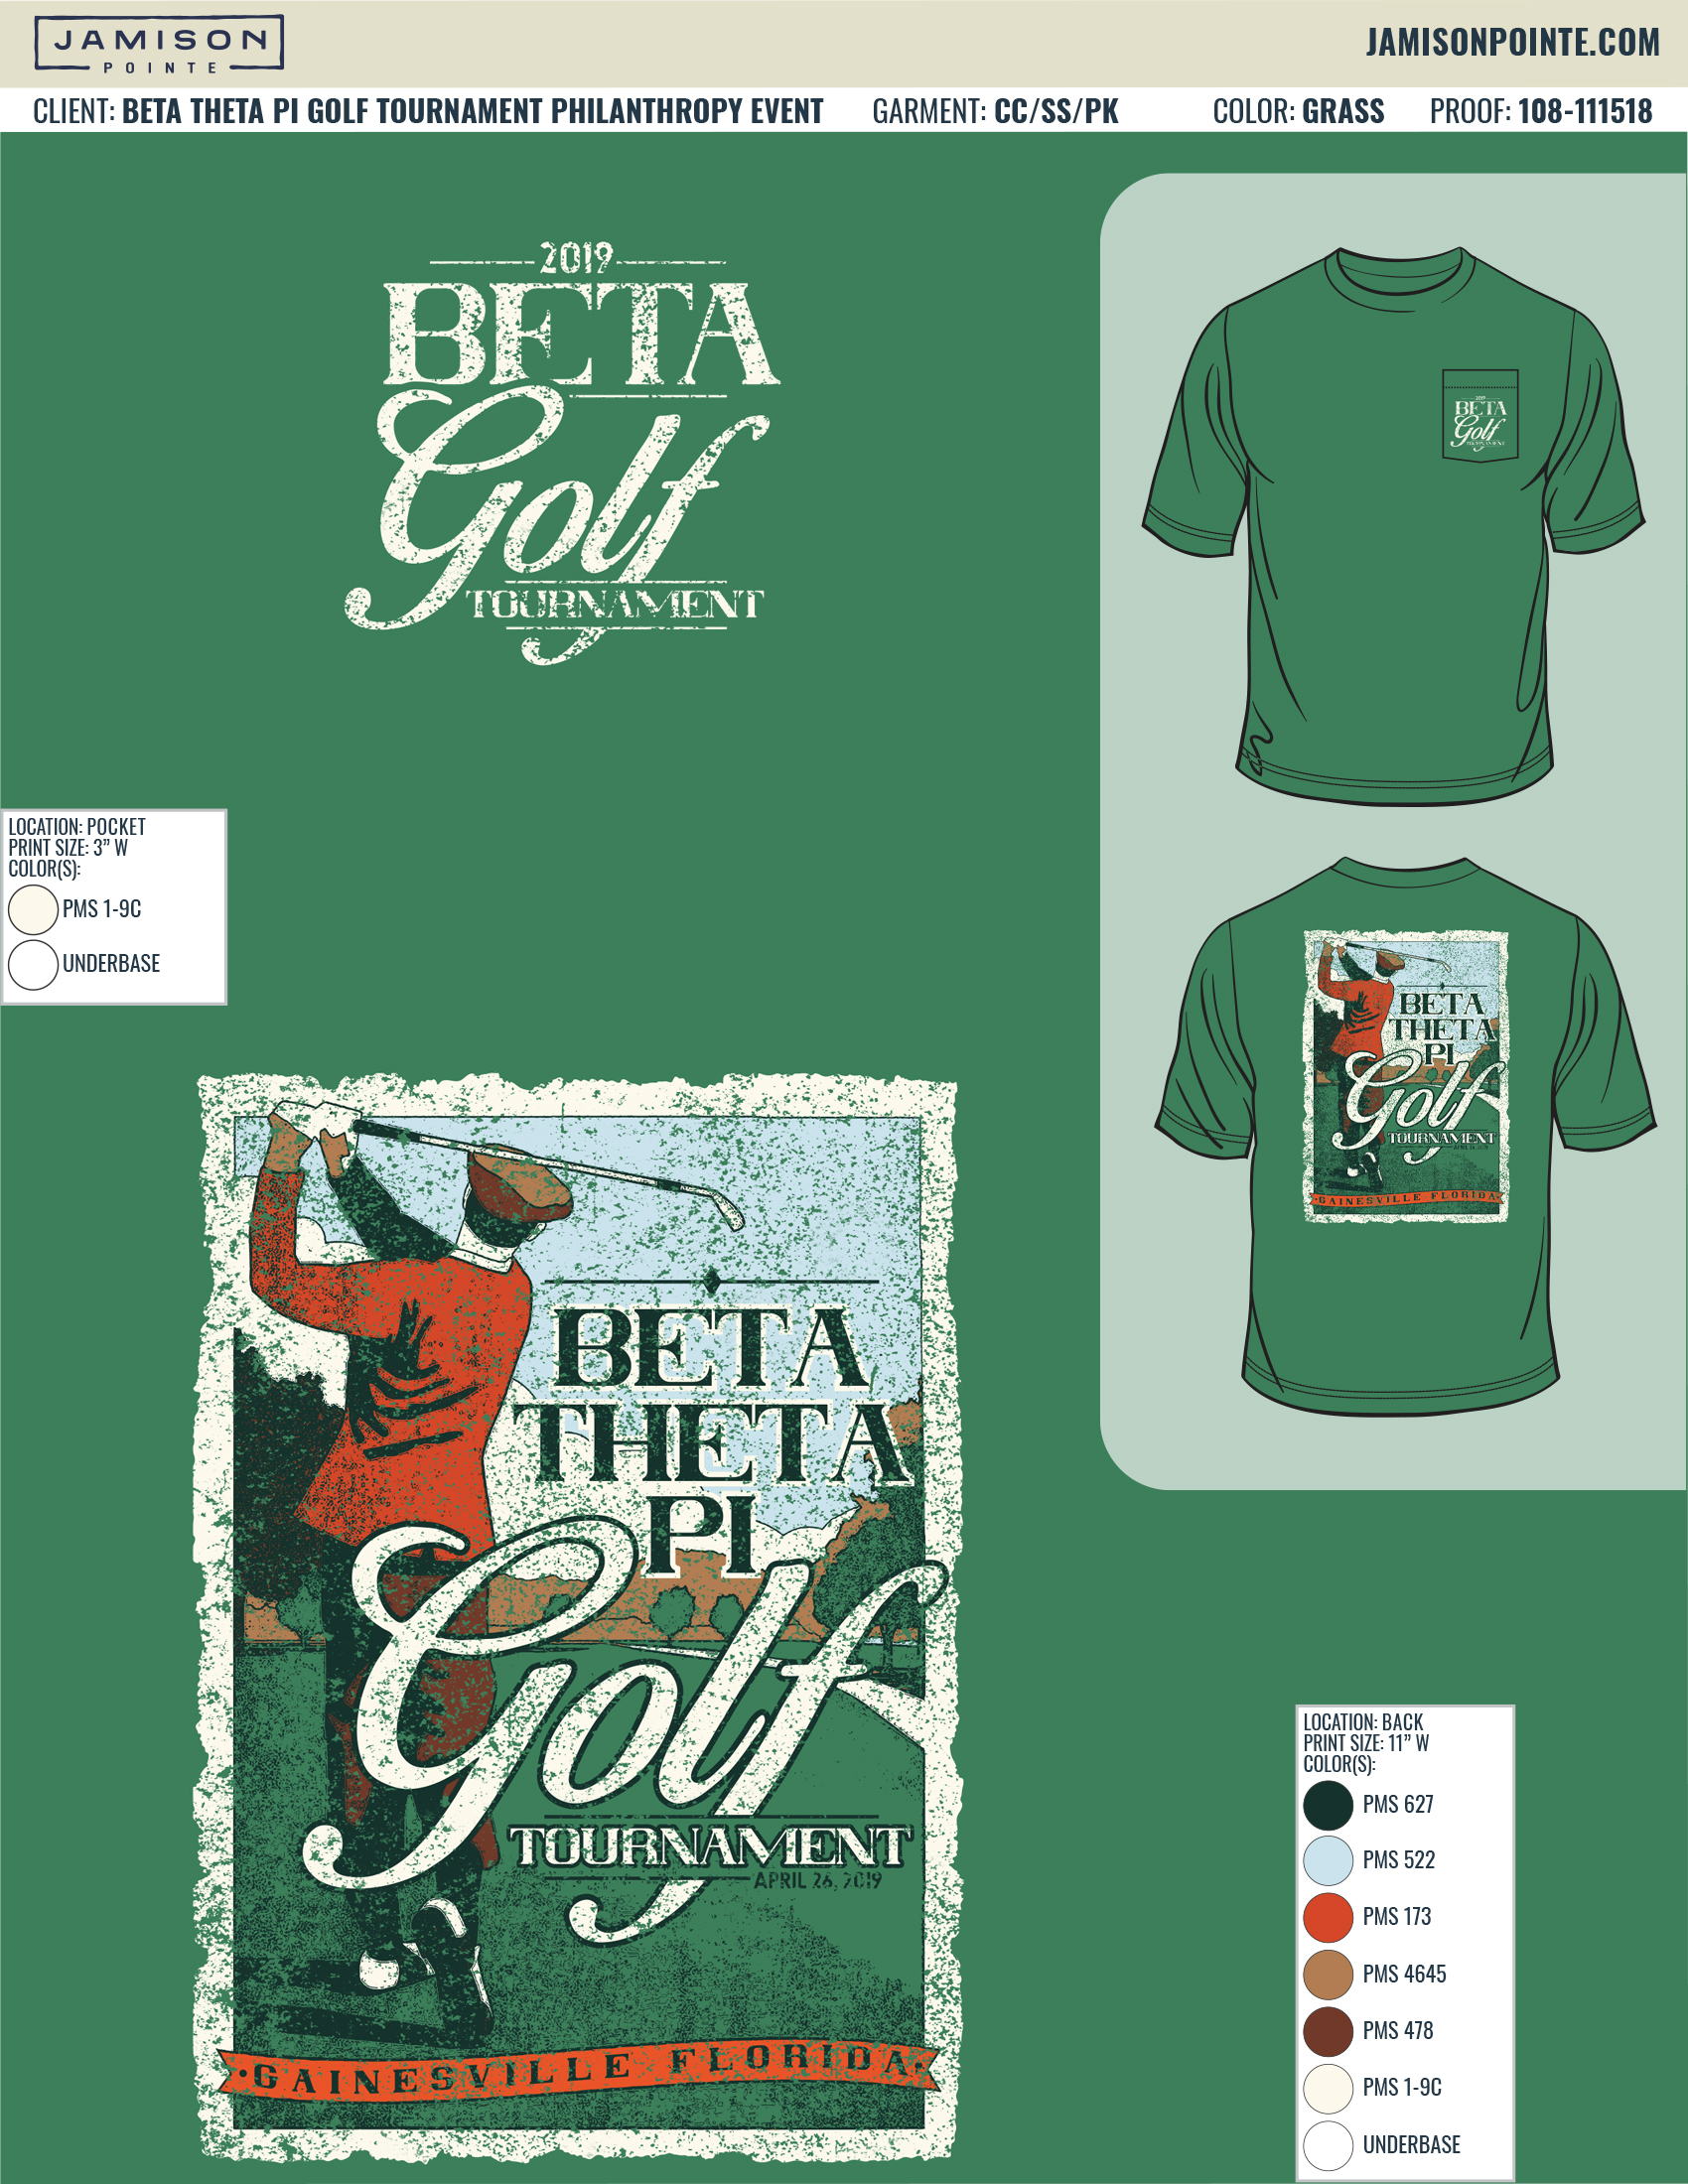 108-111518 Beta Theta Pi Golf Tournament Philanthropy Event.jpg